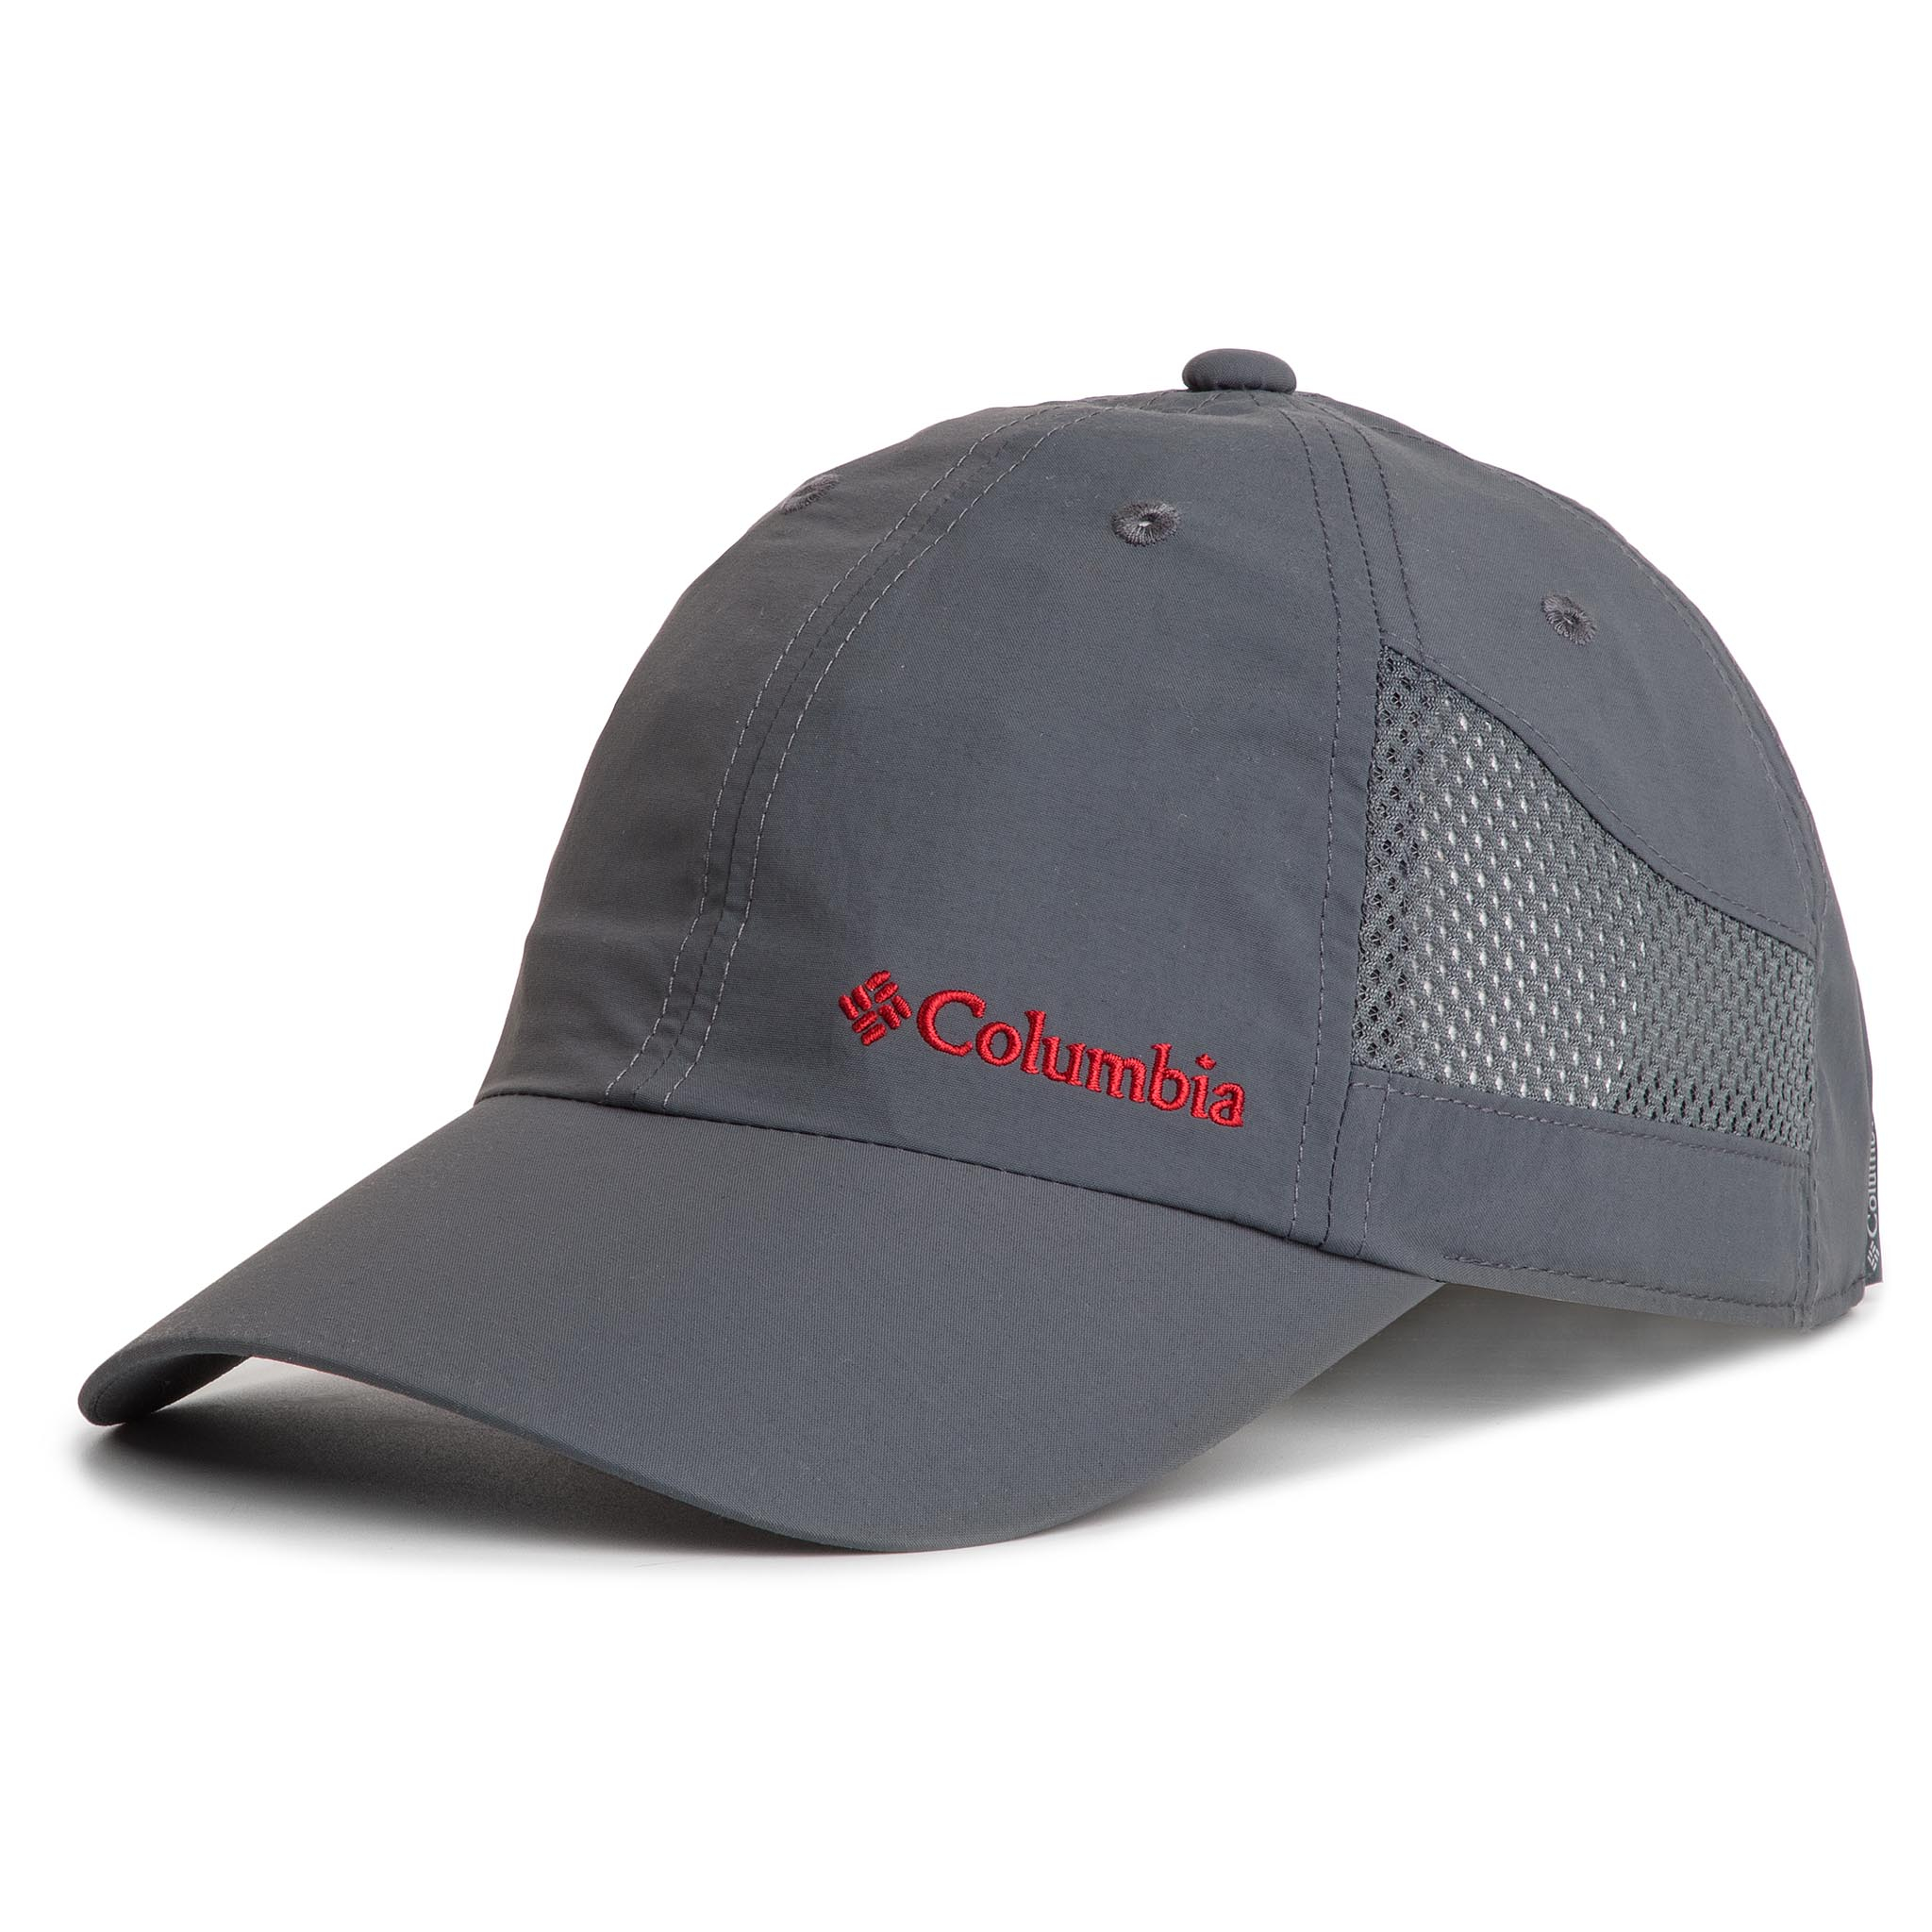 Șapcă COLUMBIA - Tech Shade Hat 1539331 Graphite 053